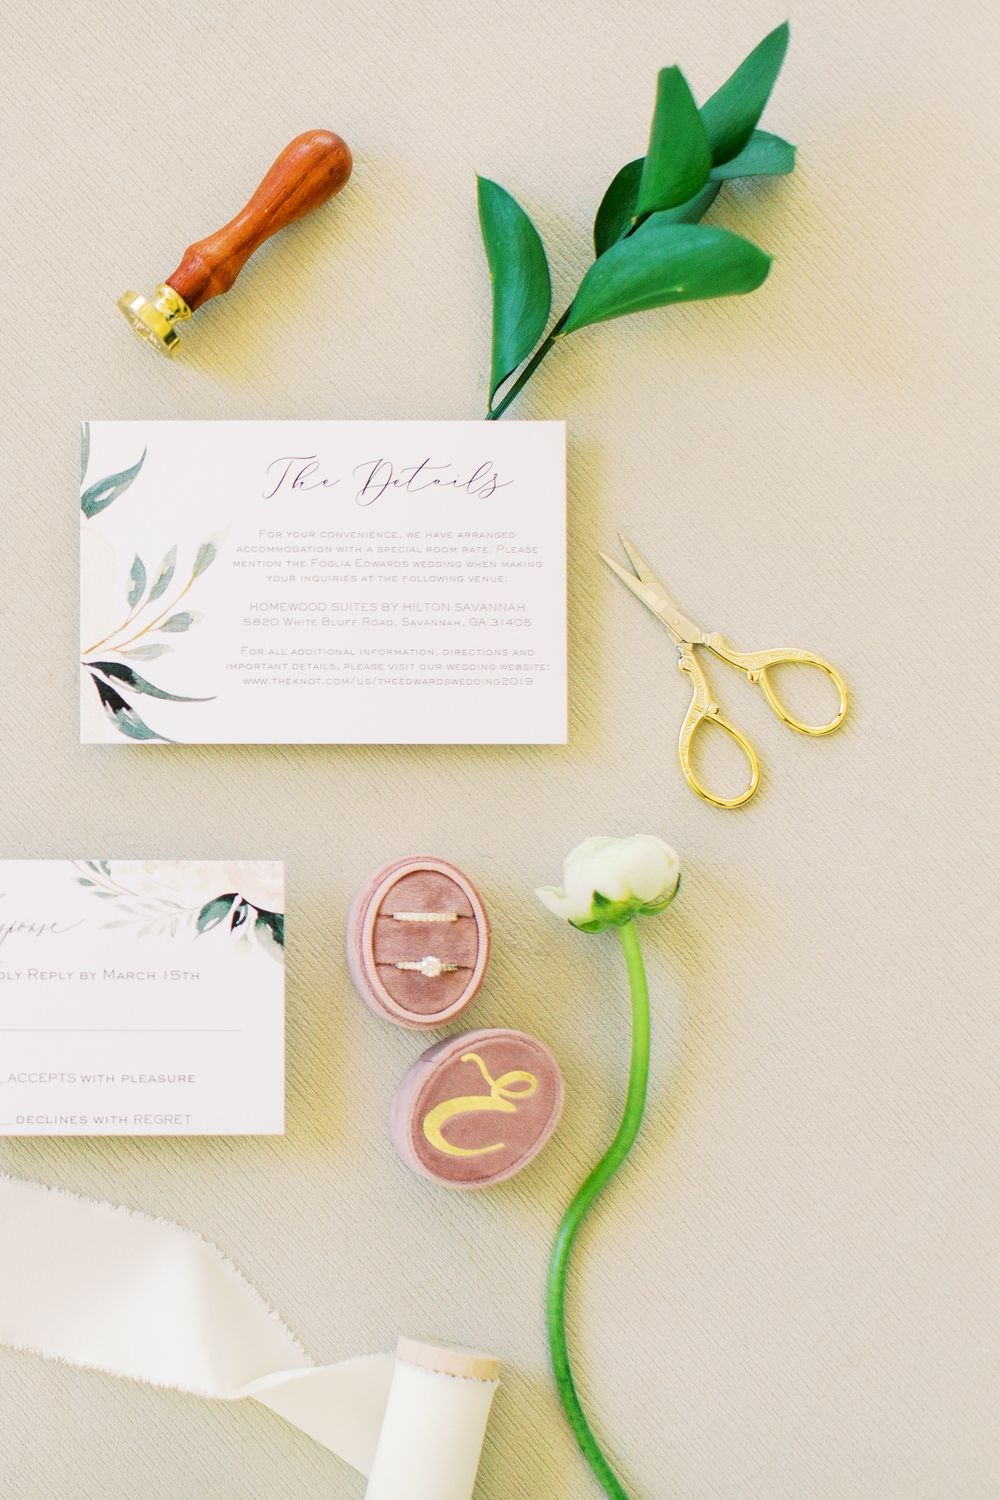 styled wedding invitation details from a savannah, ga wedding at the landing's plantation club